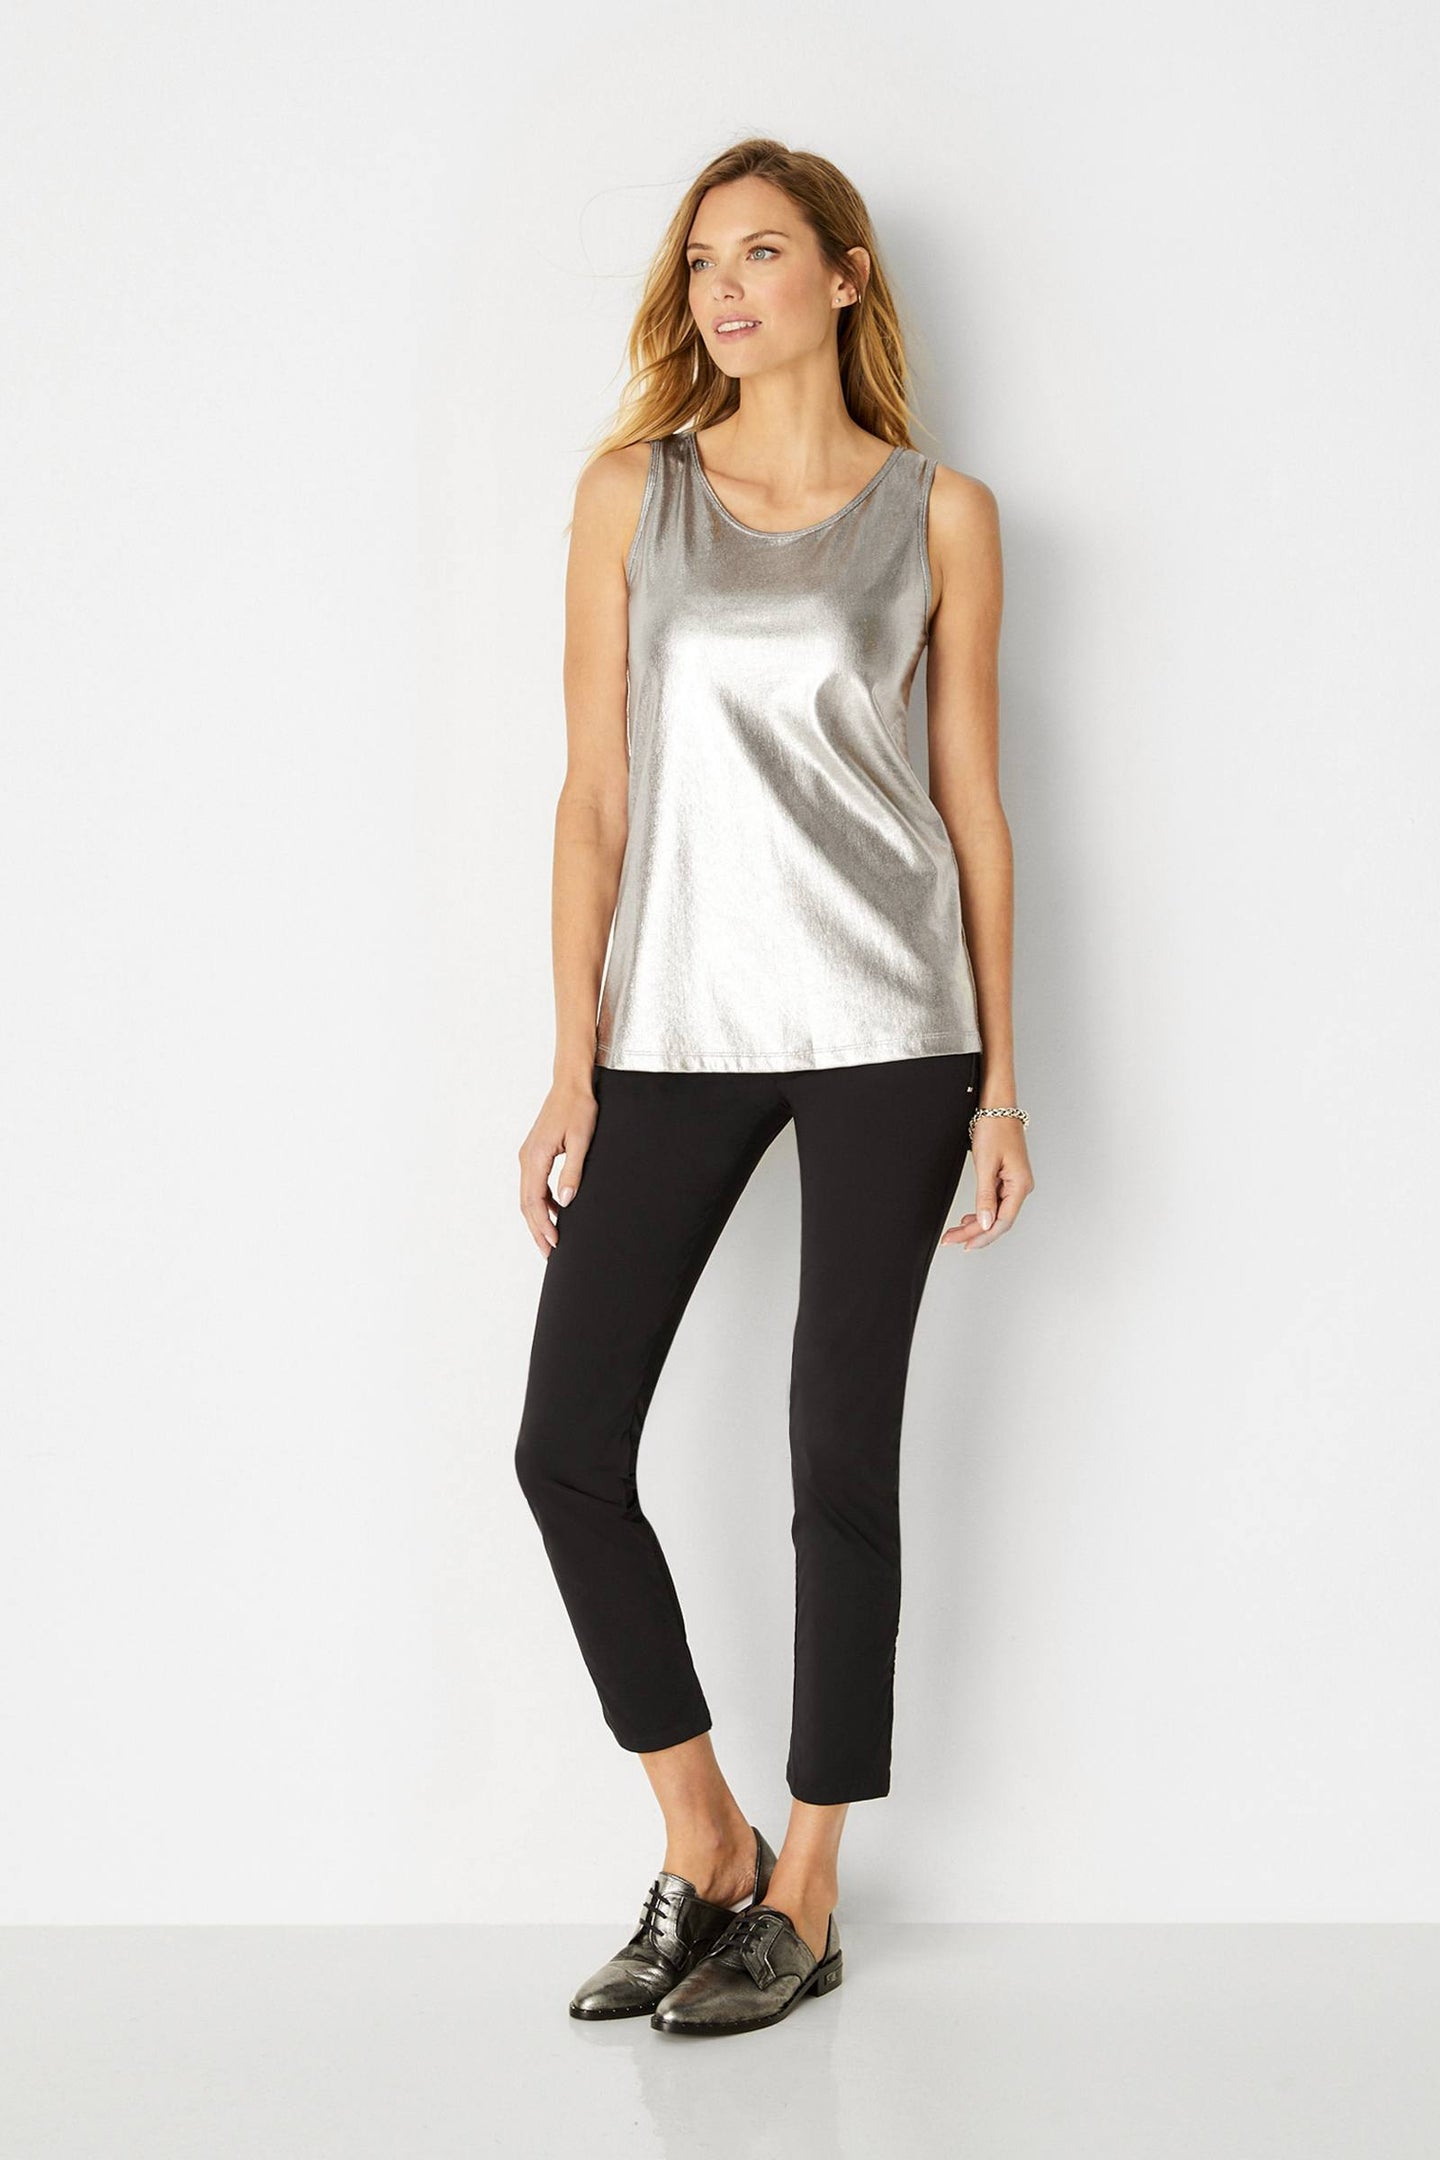 Relaxed fit Rounded scoop neckline Sleeveless design Luxe metallic finish Slightly extended length hits just below the waistline Wrinkle-resistant Imported: 92% Polyester / 8% Elastane Made in Italy